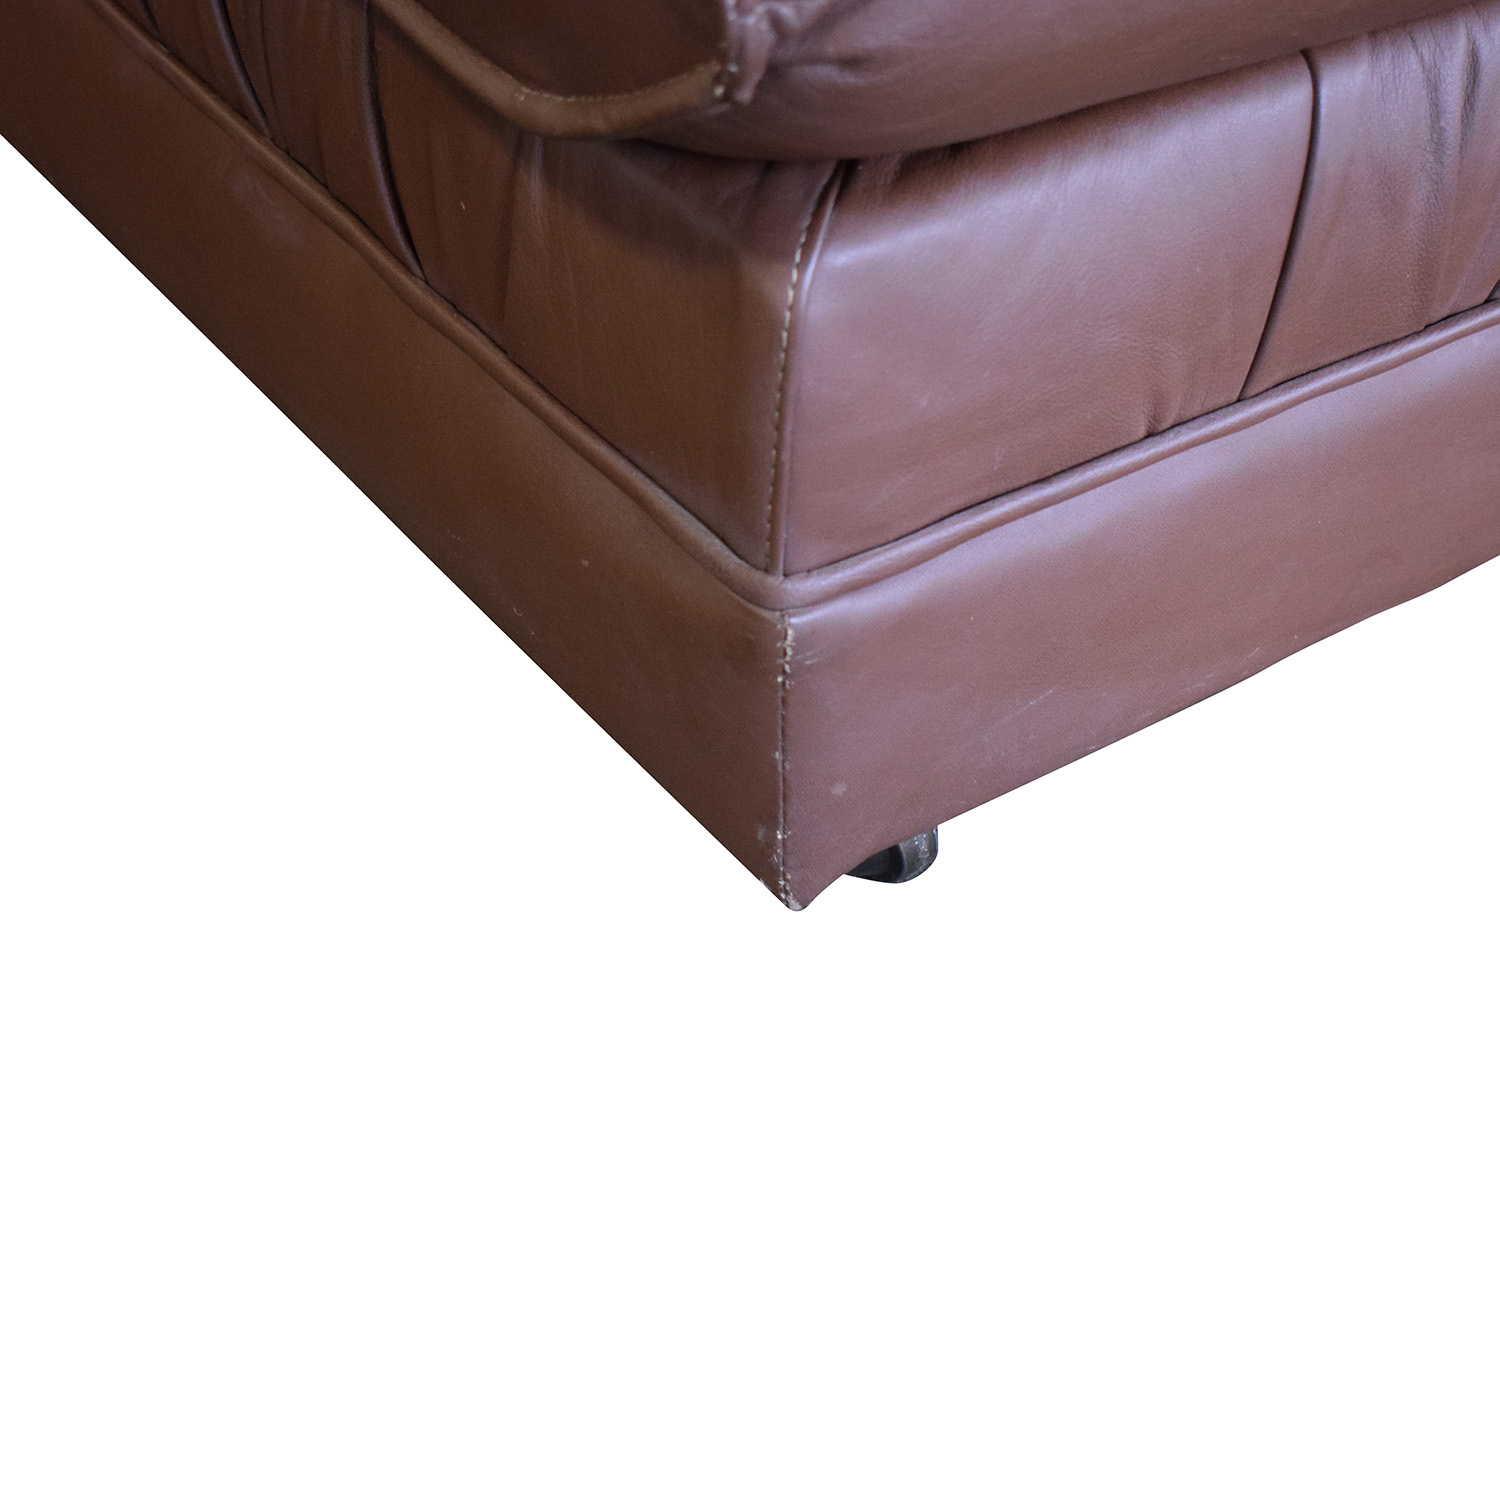 Emerson Leather Emerson Leather Sectional Sofa and Ottoman